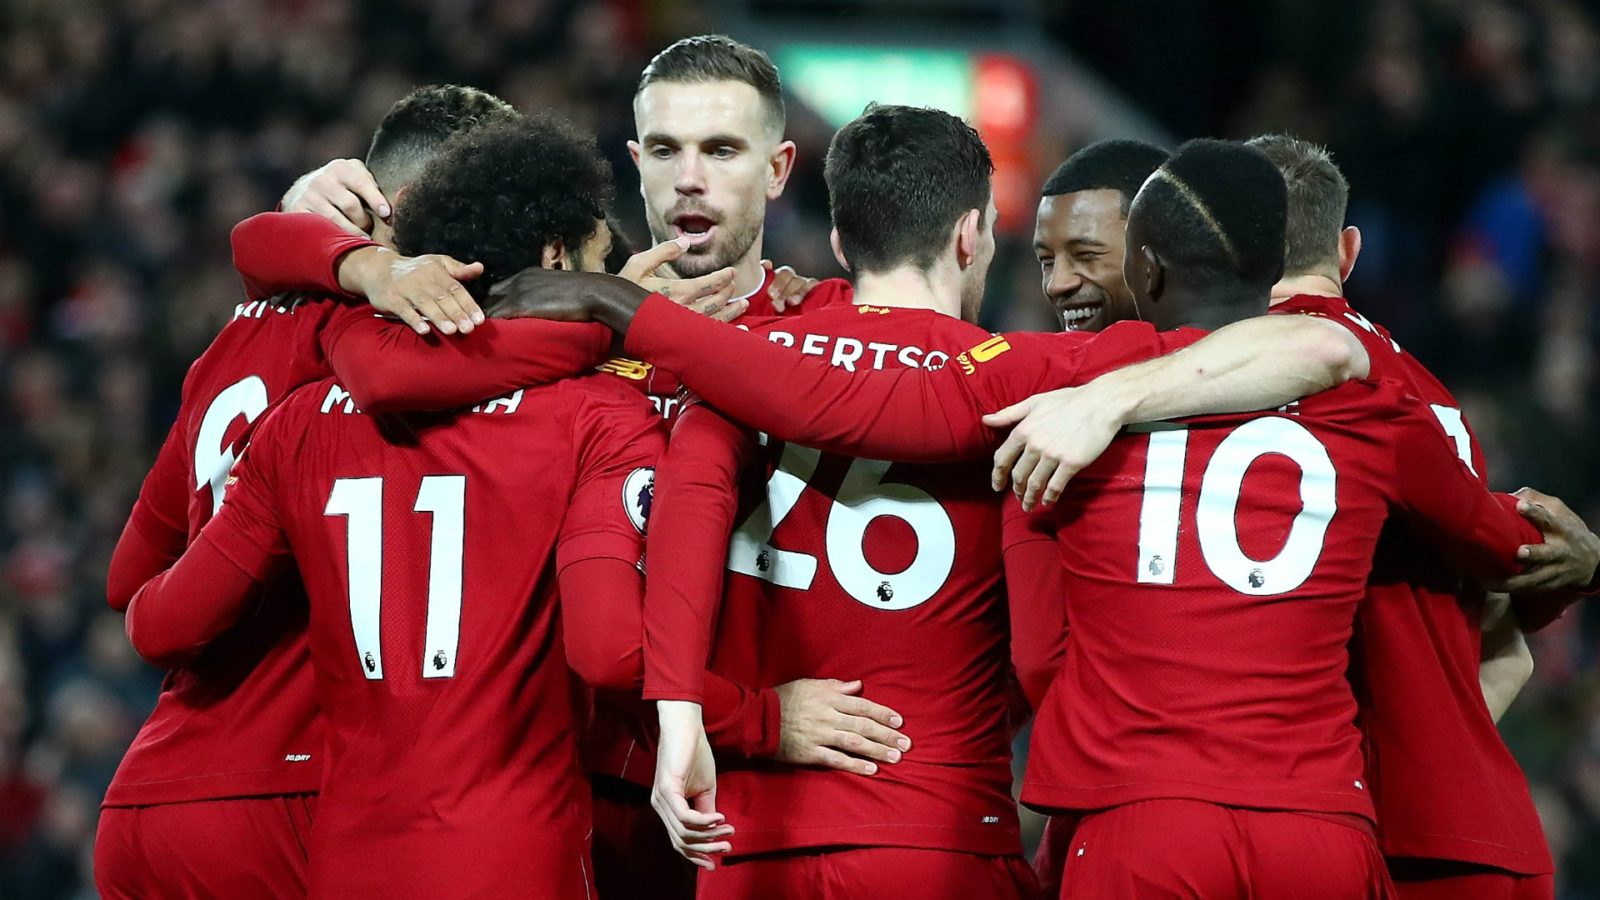 'liverpool-need-back-to-back-titles-to-be-greats'-–-man-utd-legend-ferdinand-plays-down-big-billing